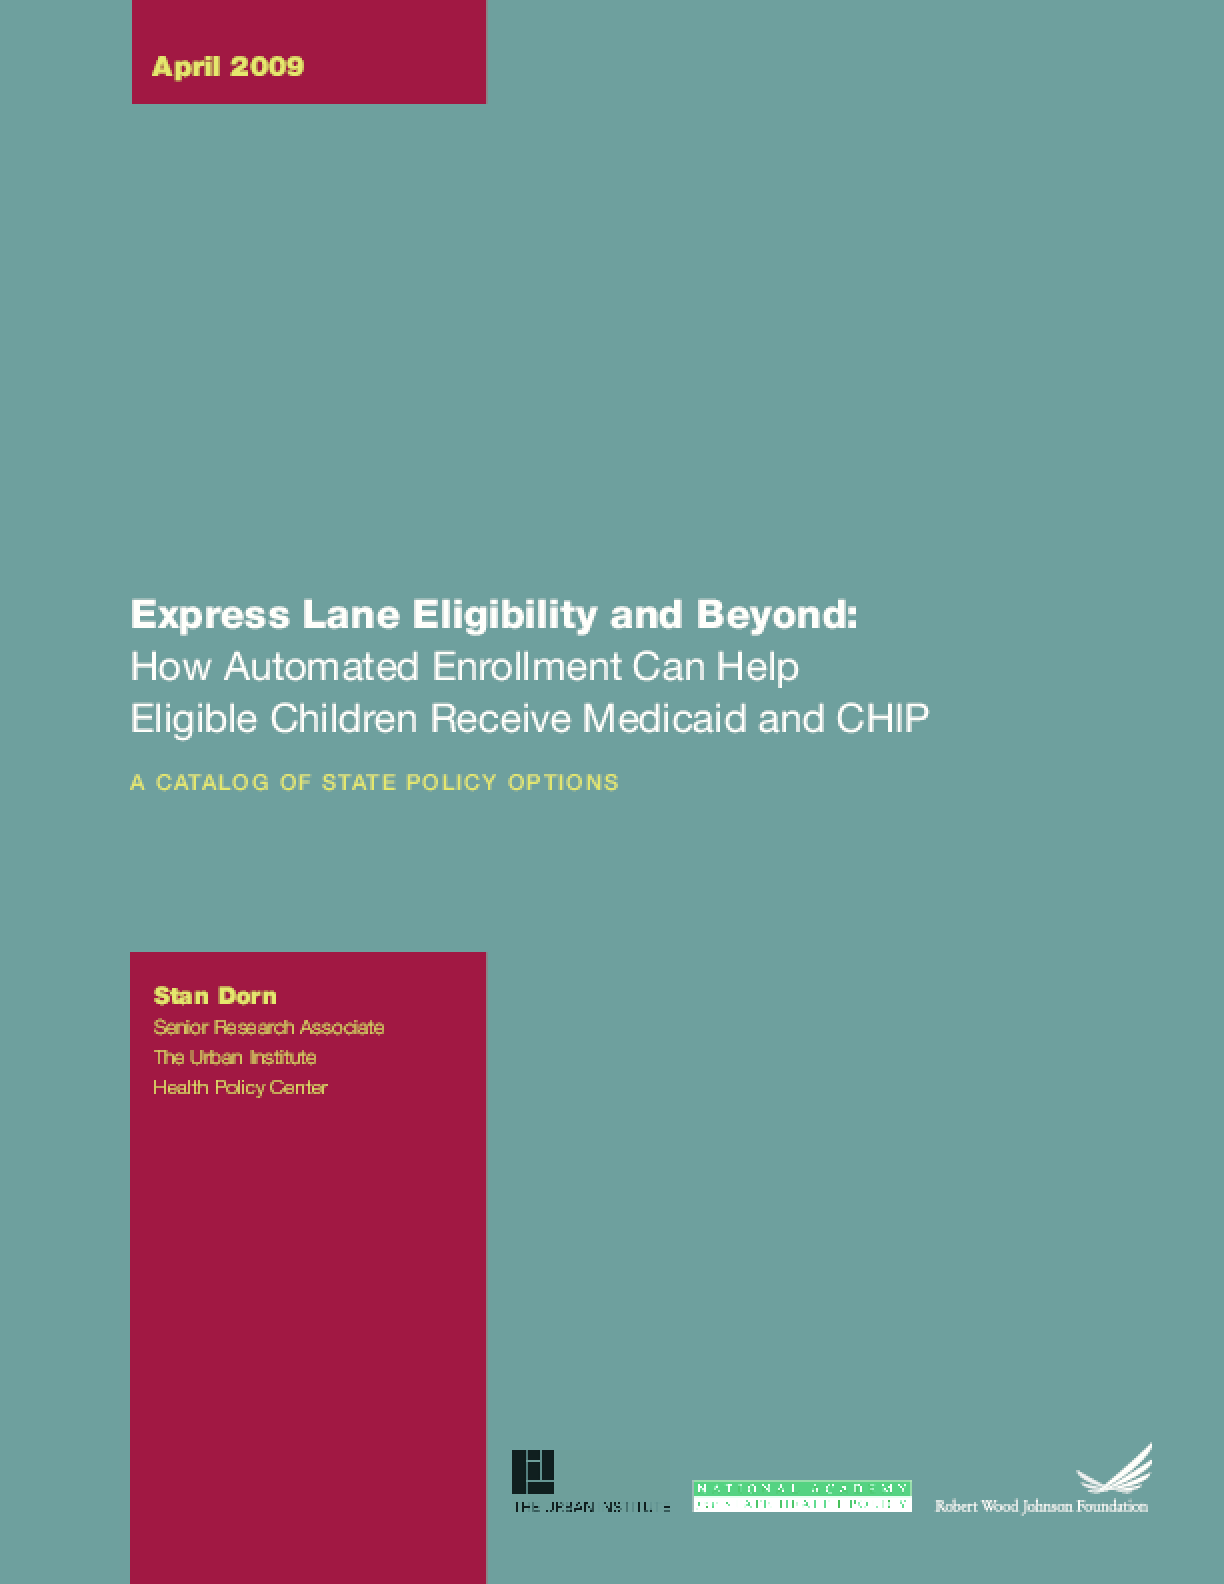 Express Lane Eligibility and Beyond: How Automated Enrollment Can Help Eligible Children Receive Medicaid and CHIP